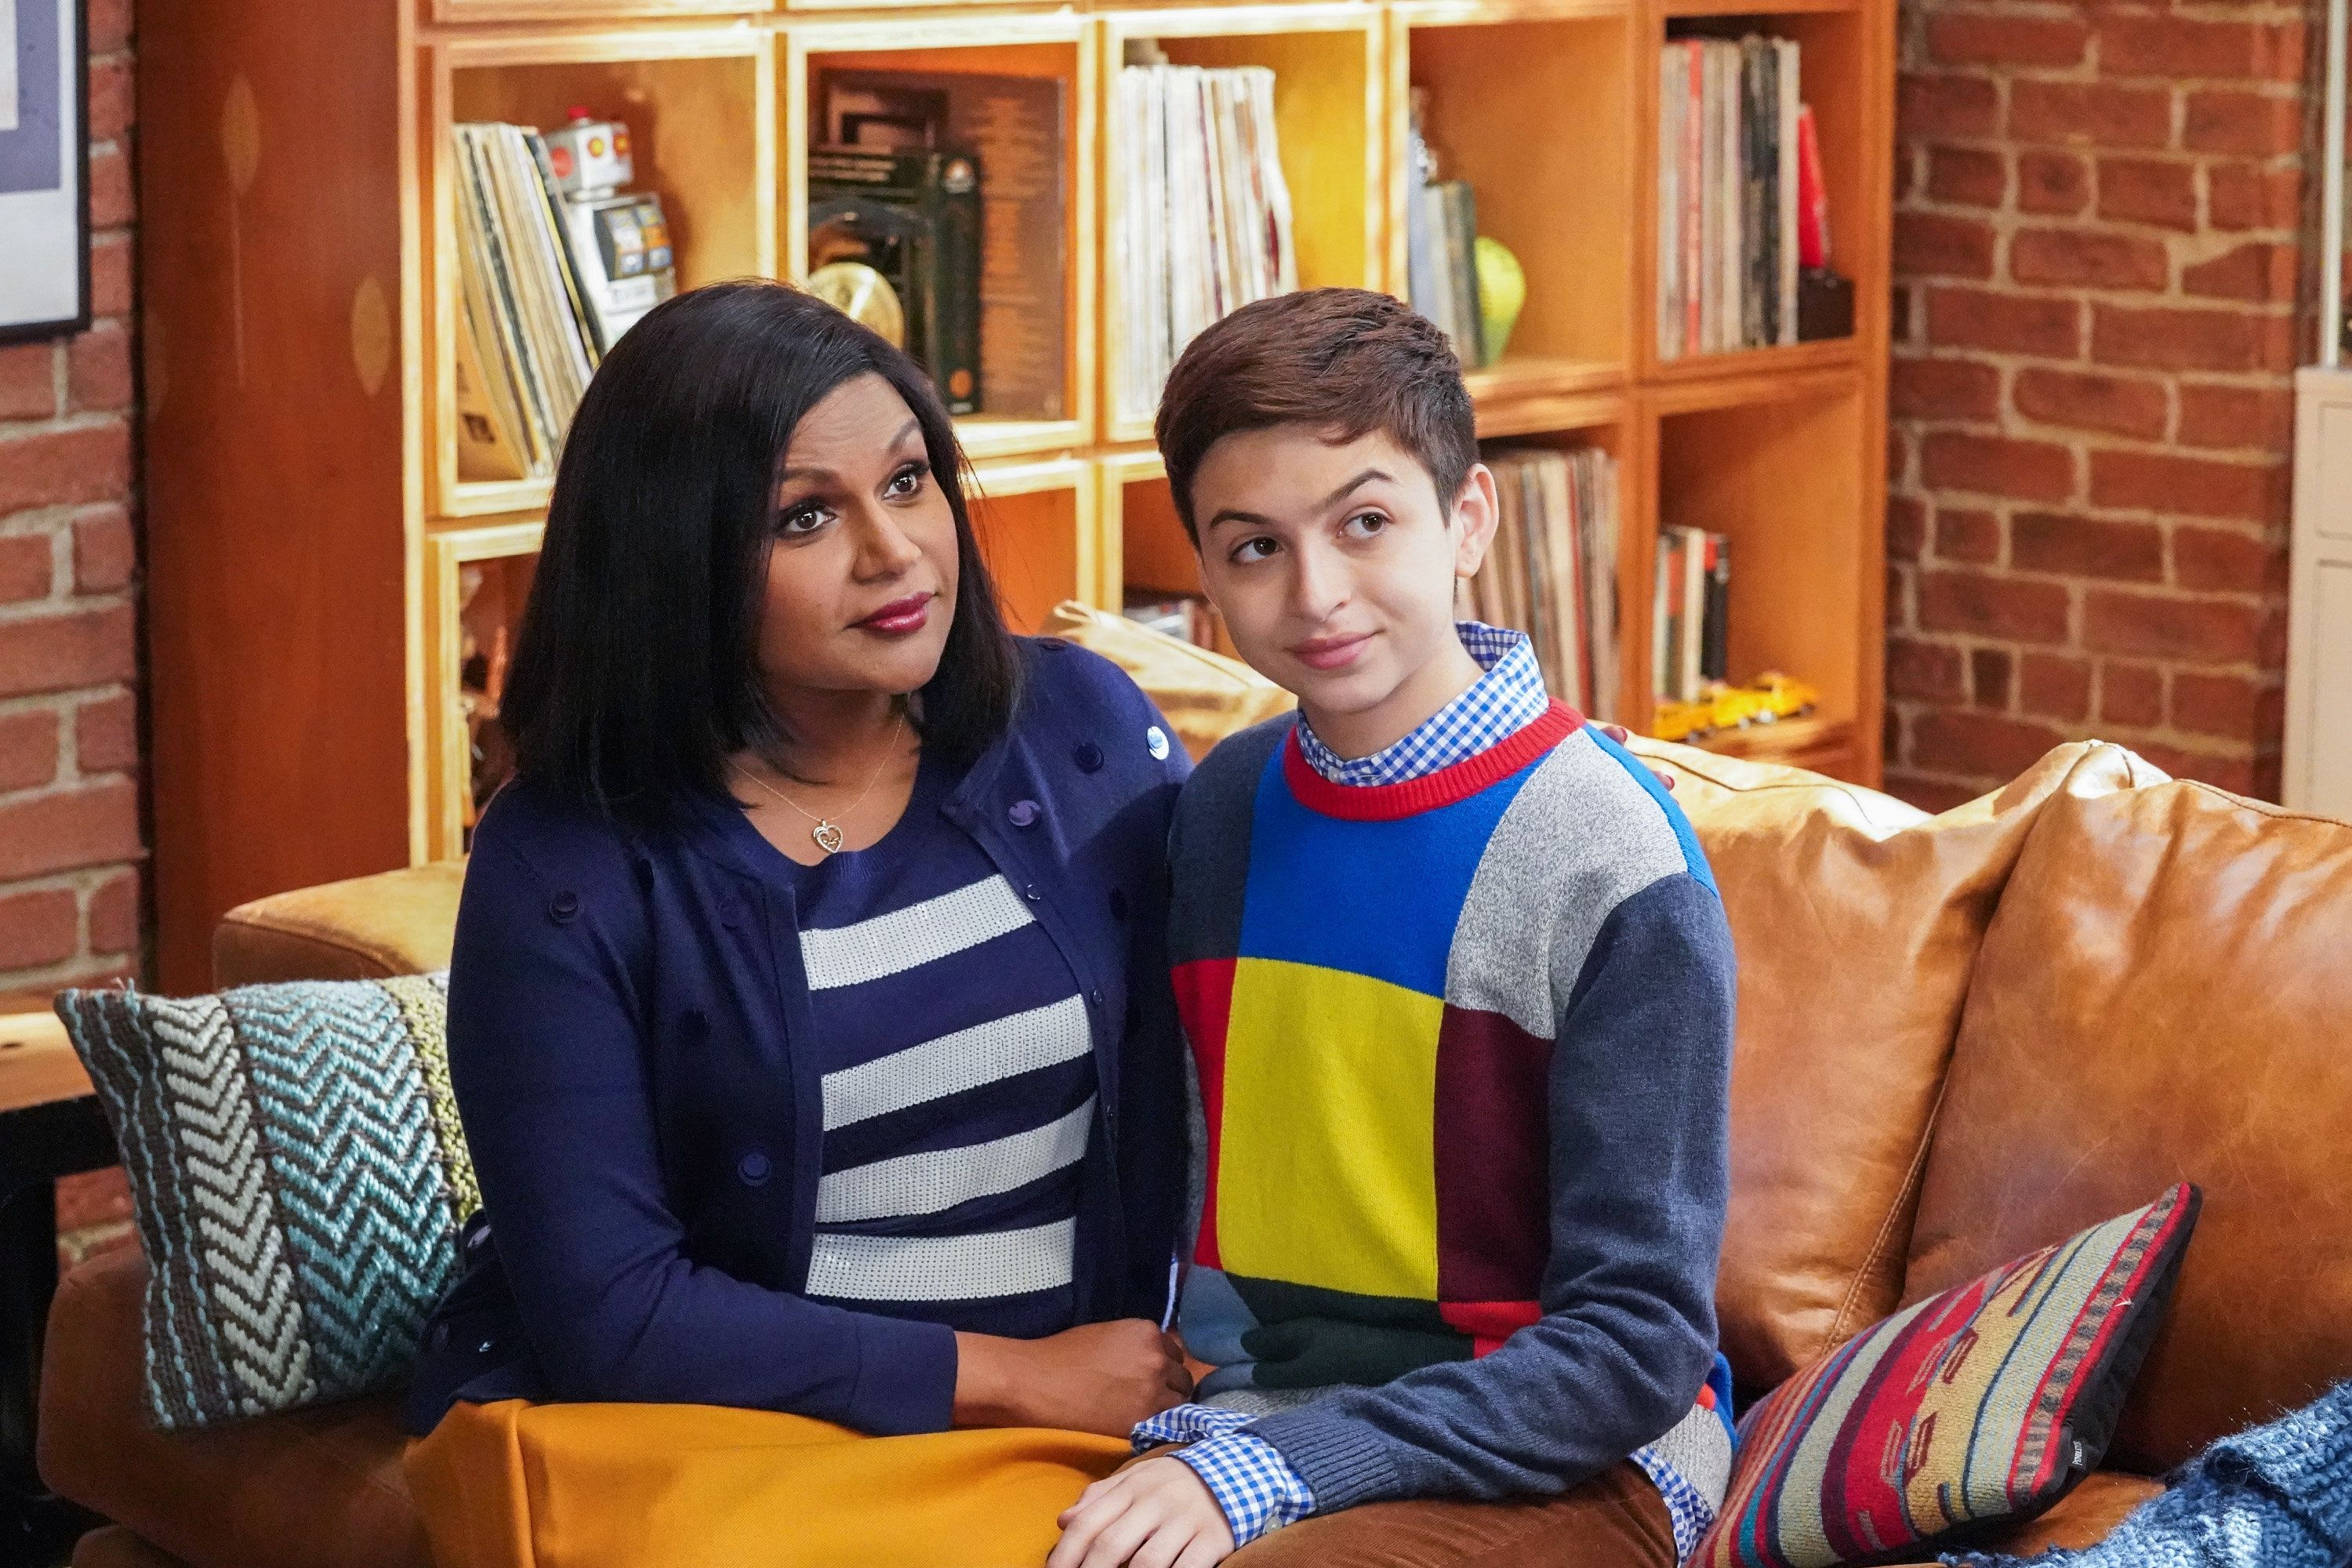 CHAMPIONS -- 'Opening Night' Episode 109 -- Pictured: (l-r) Mindy Kaling as Priya, J.J. Totah as Michael -- (Photo by: Evans Vestal Ward/NBC/NBCU Photo Bank via Getty Images)